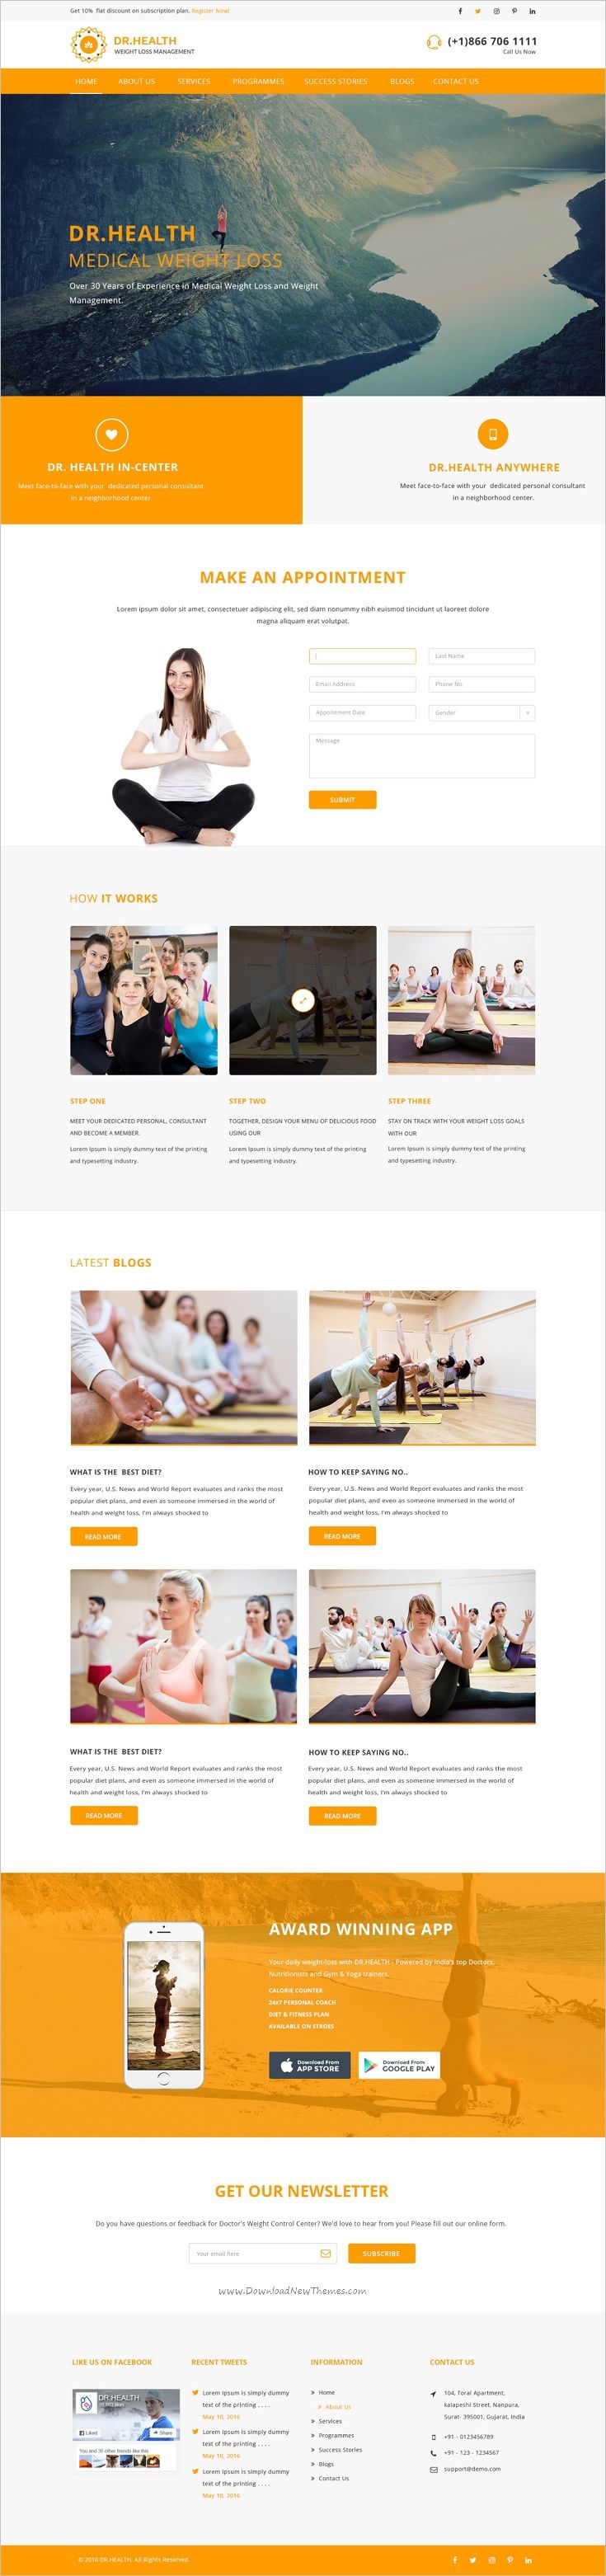 Dr.Health is a modern and creative #PSD template for #yoga and #healthcare websites with 5 homepage layouts and 38+ organized PSD pages download now➩ https://themeforest.net/item/drhealth-modern-and-creative-psd-template/18501343?ref=Datasata